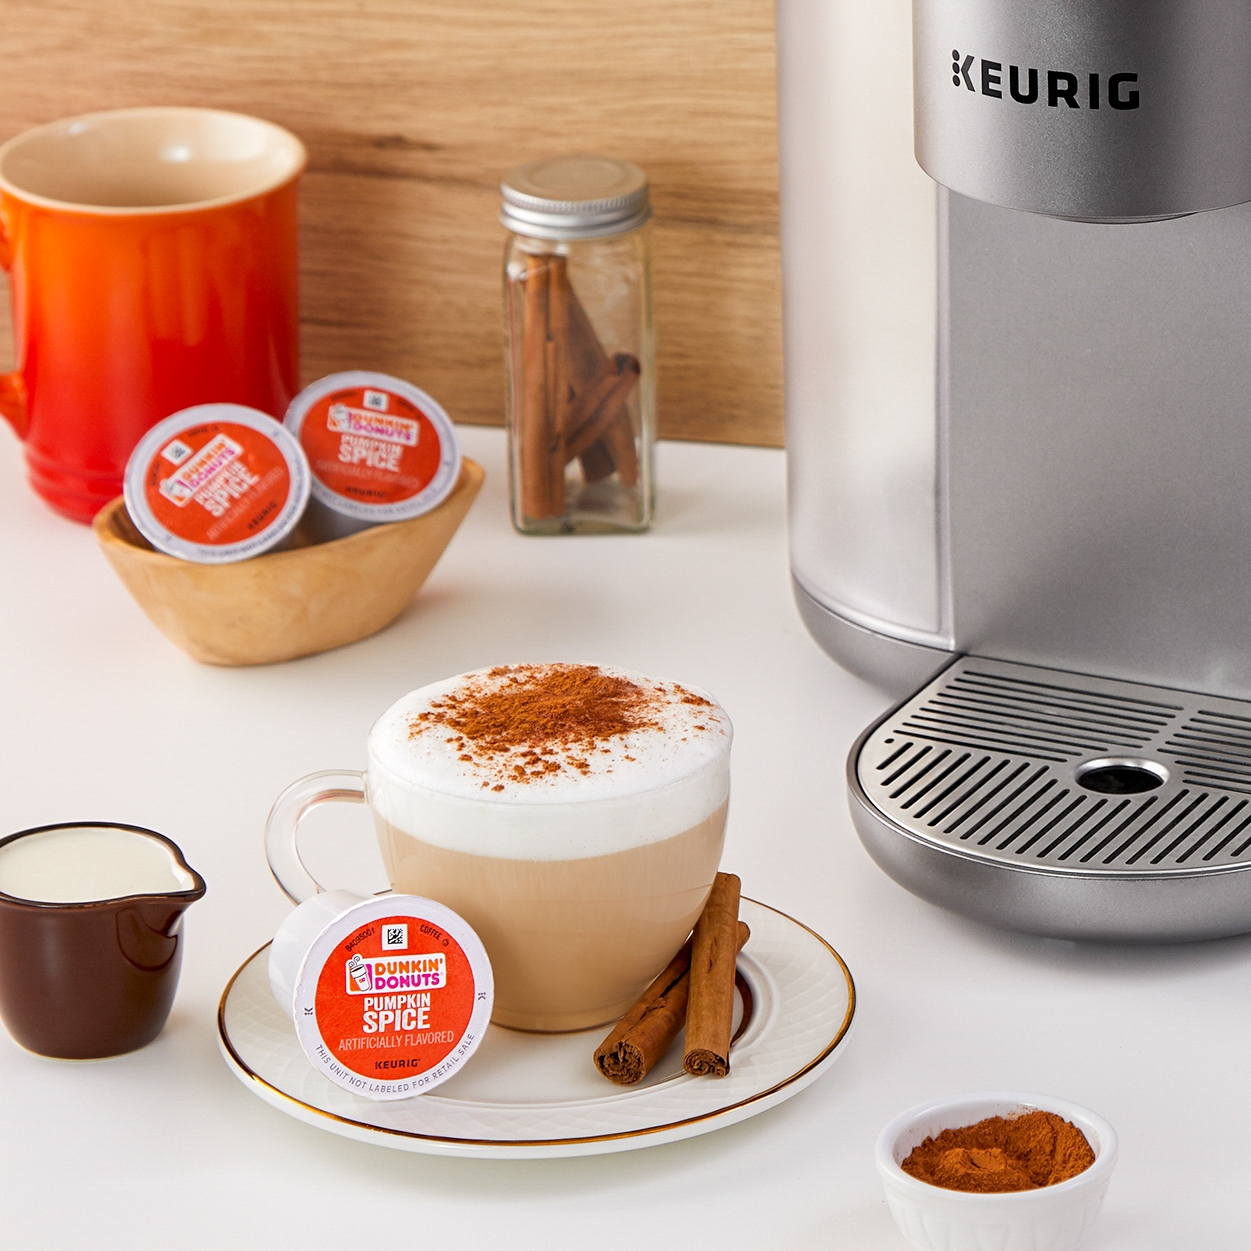 keurig, dunkin donuts, pumpkin spice, bed bath and beyond